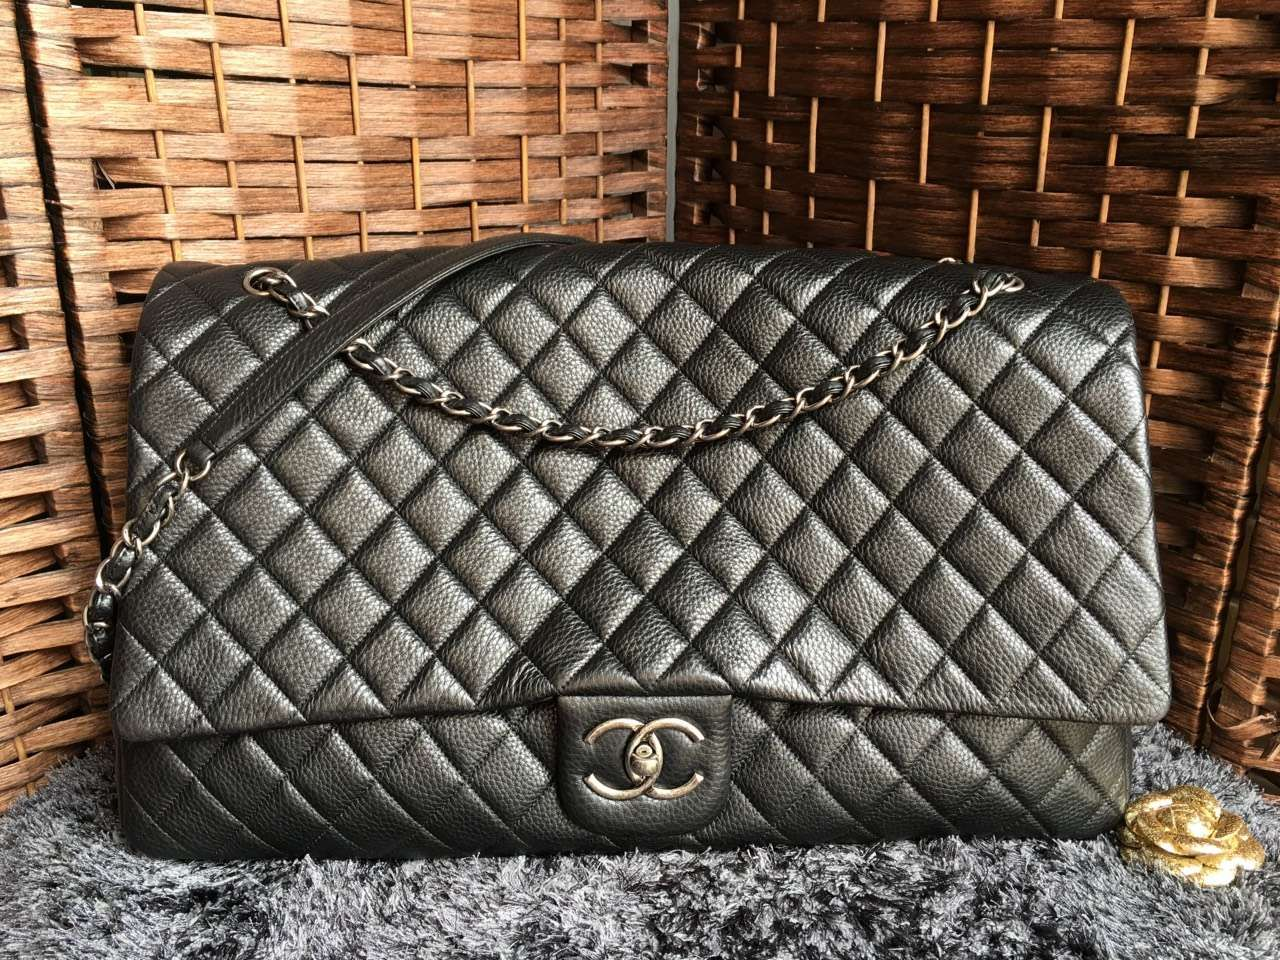 2a1d27a89bae Chanel Classic Flap Bag XXL Large Metallic Calfksin A91169  Whatsapp:+8615817091613 for more pics and other payment options.